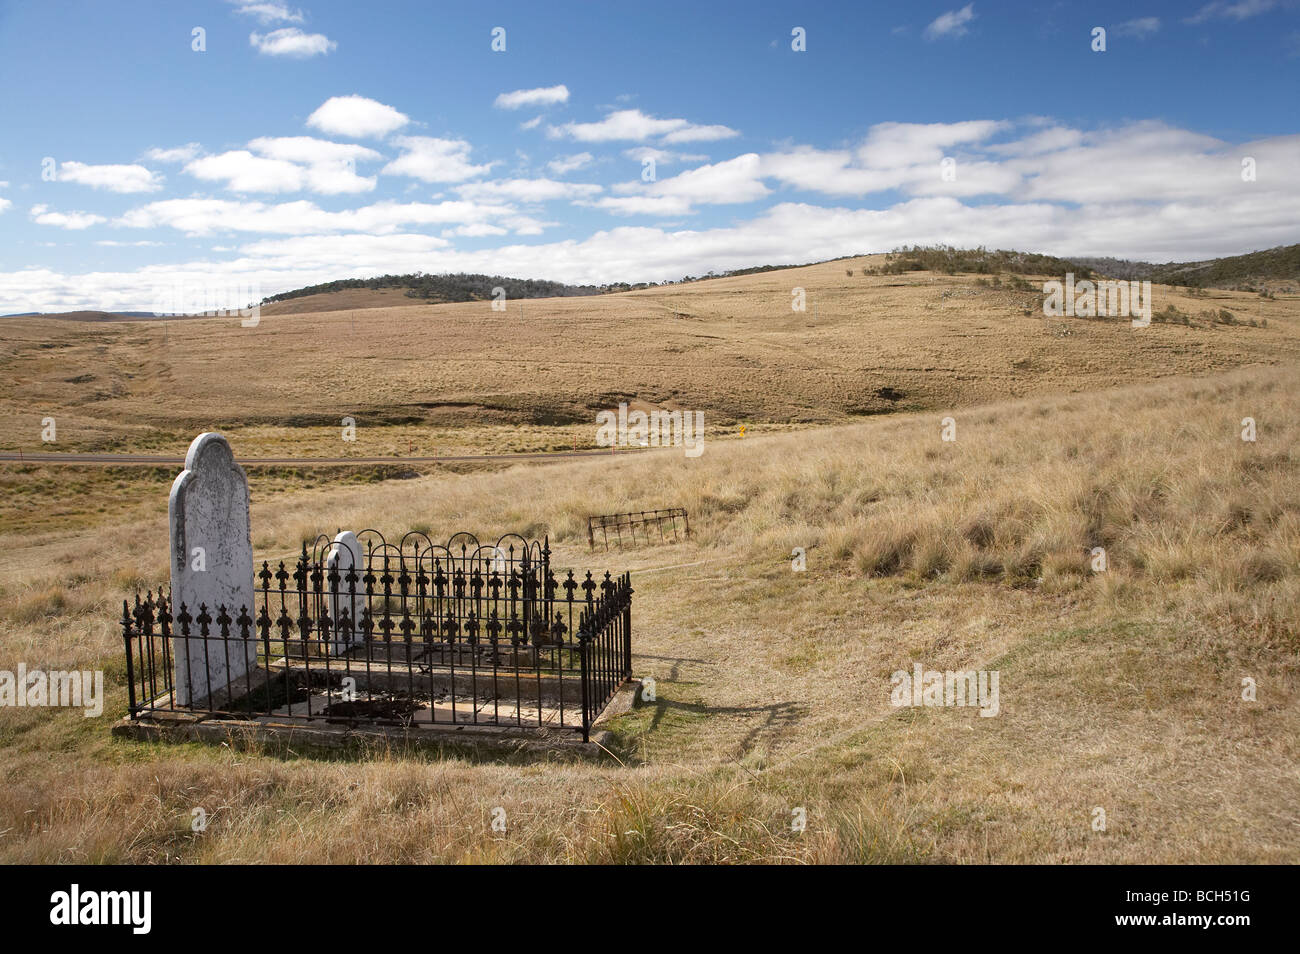 Old Cemetery Historic Abandoned Gold Rush Town of Kiandra Kosciuszko National Park Snowy Mountains New South Wales - Stock Image